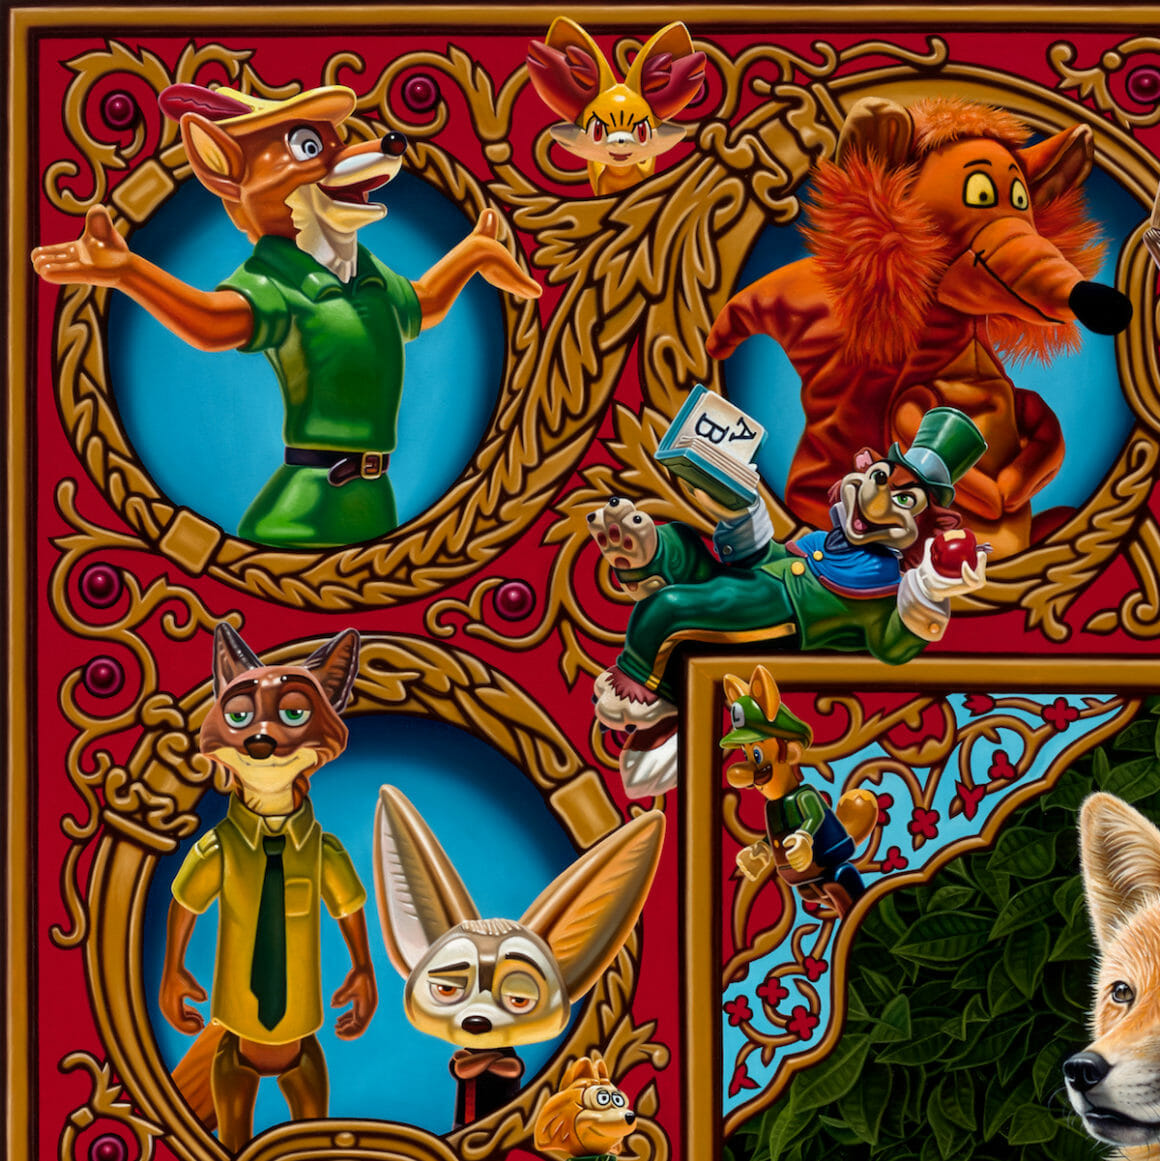 Fox personnage